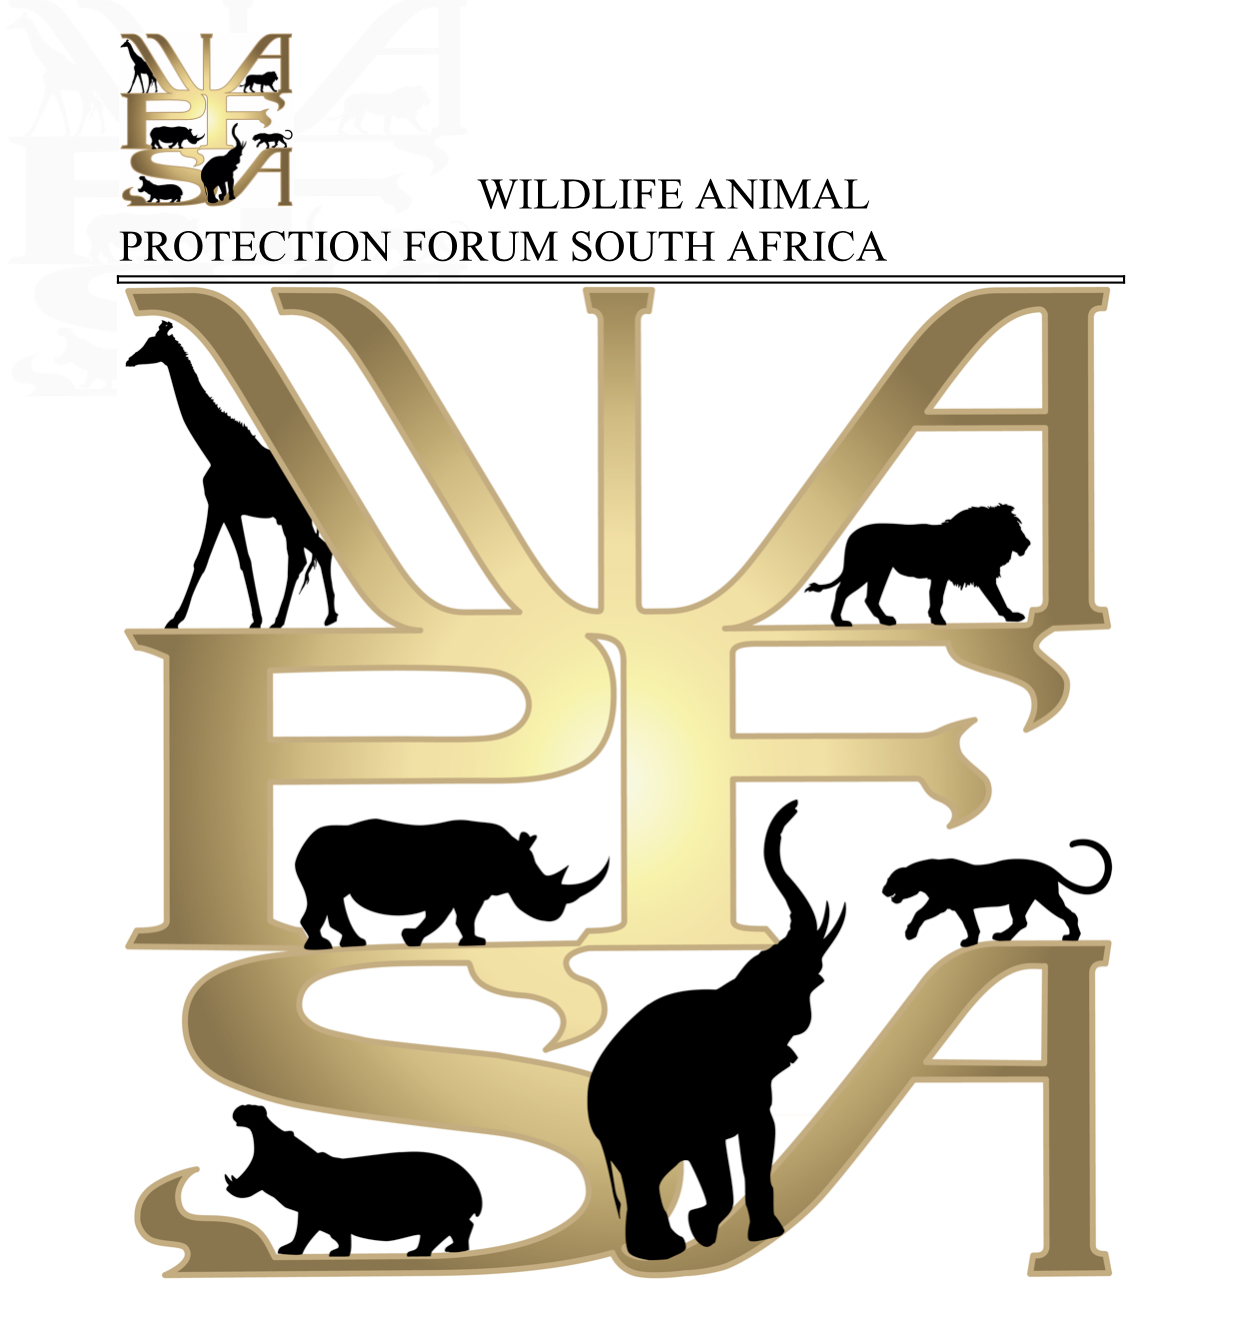 WILDLIFE ANIMAL PROTECTION FORUM South Africa